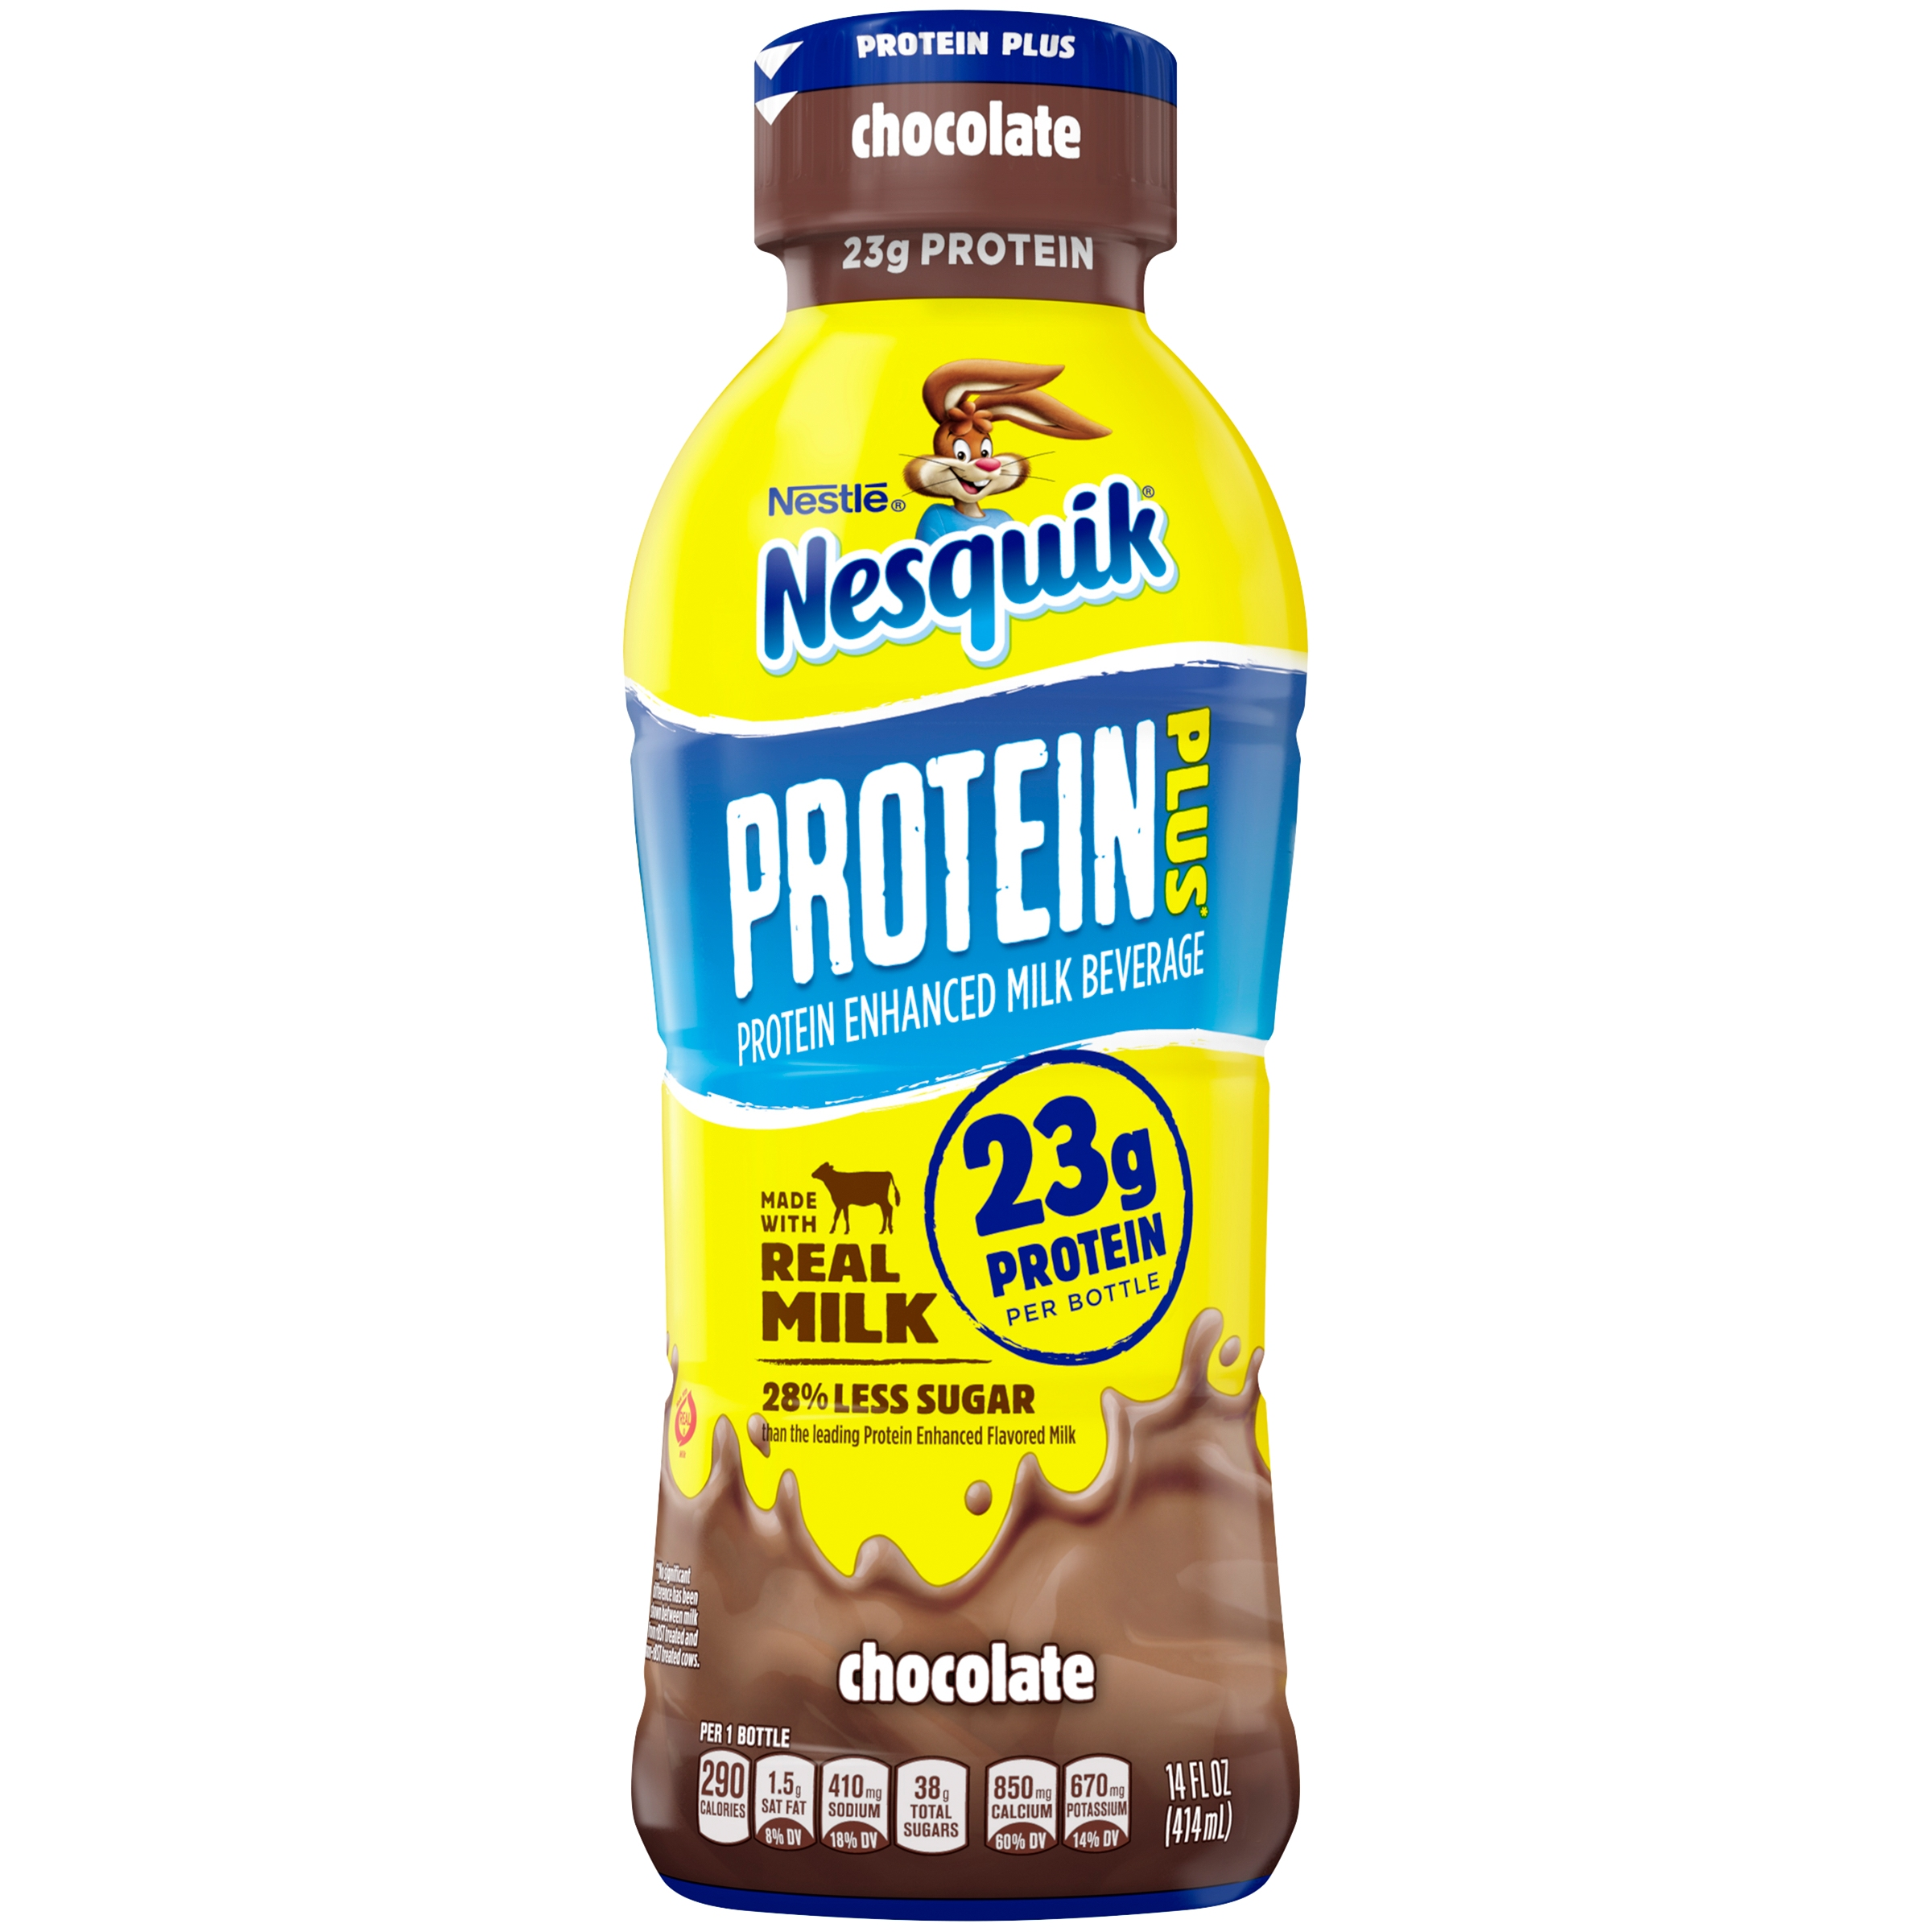 Nestle Nesquick Protein Plus Low-Fat Chocolate Milk, 1 Pint